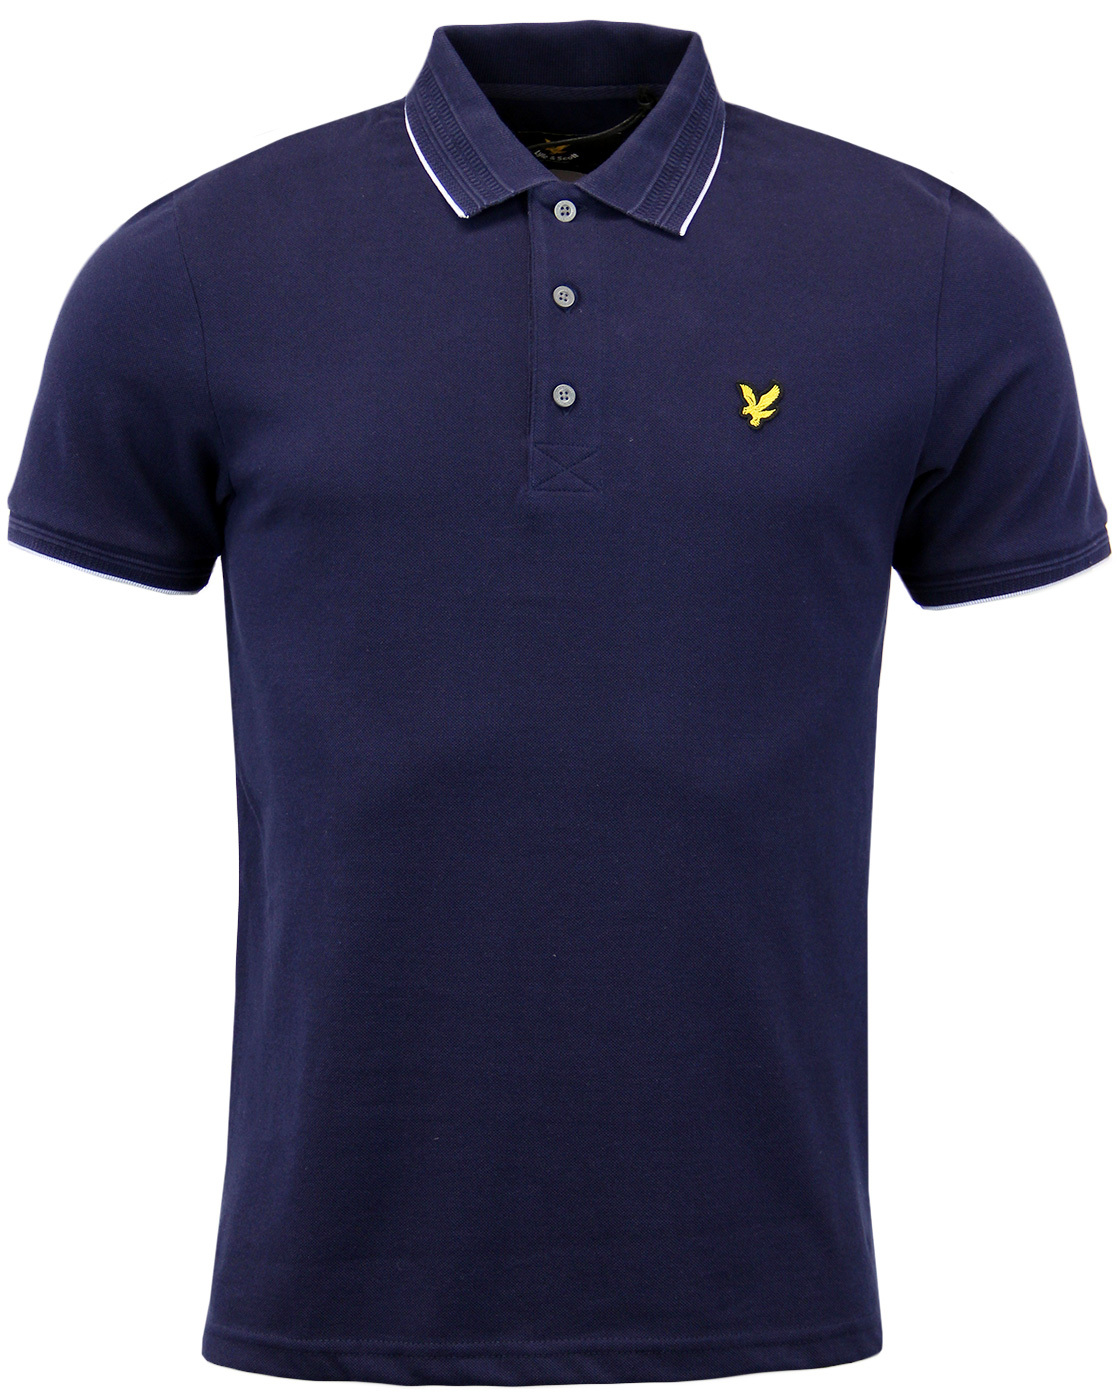 LYLE & SCOTT Retro 1960s Woven Collar Oxford Polo